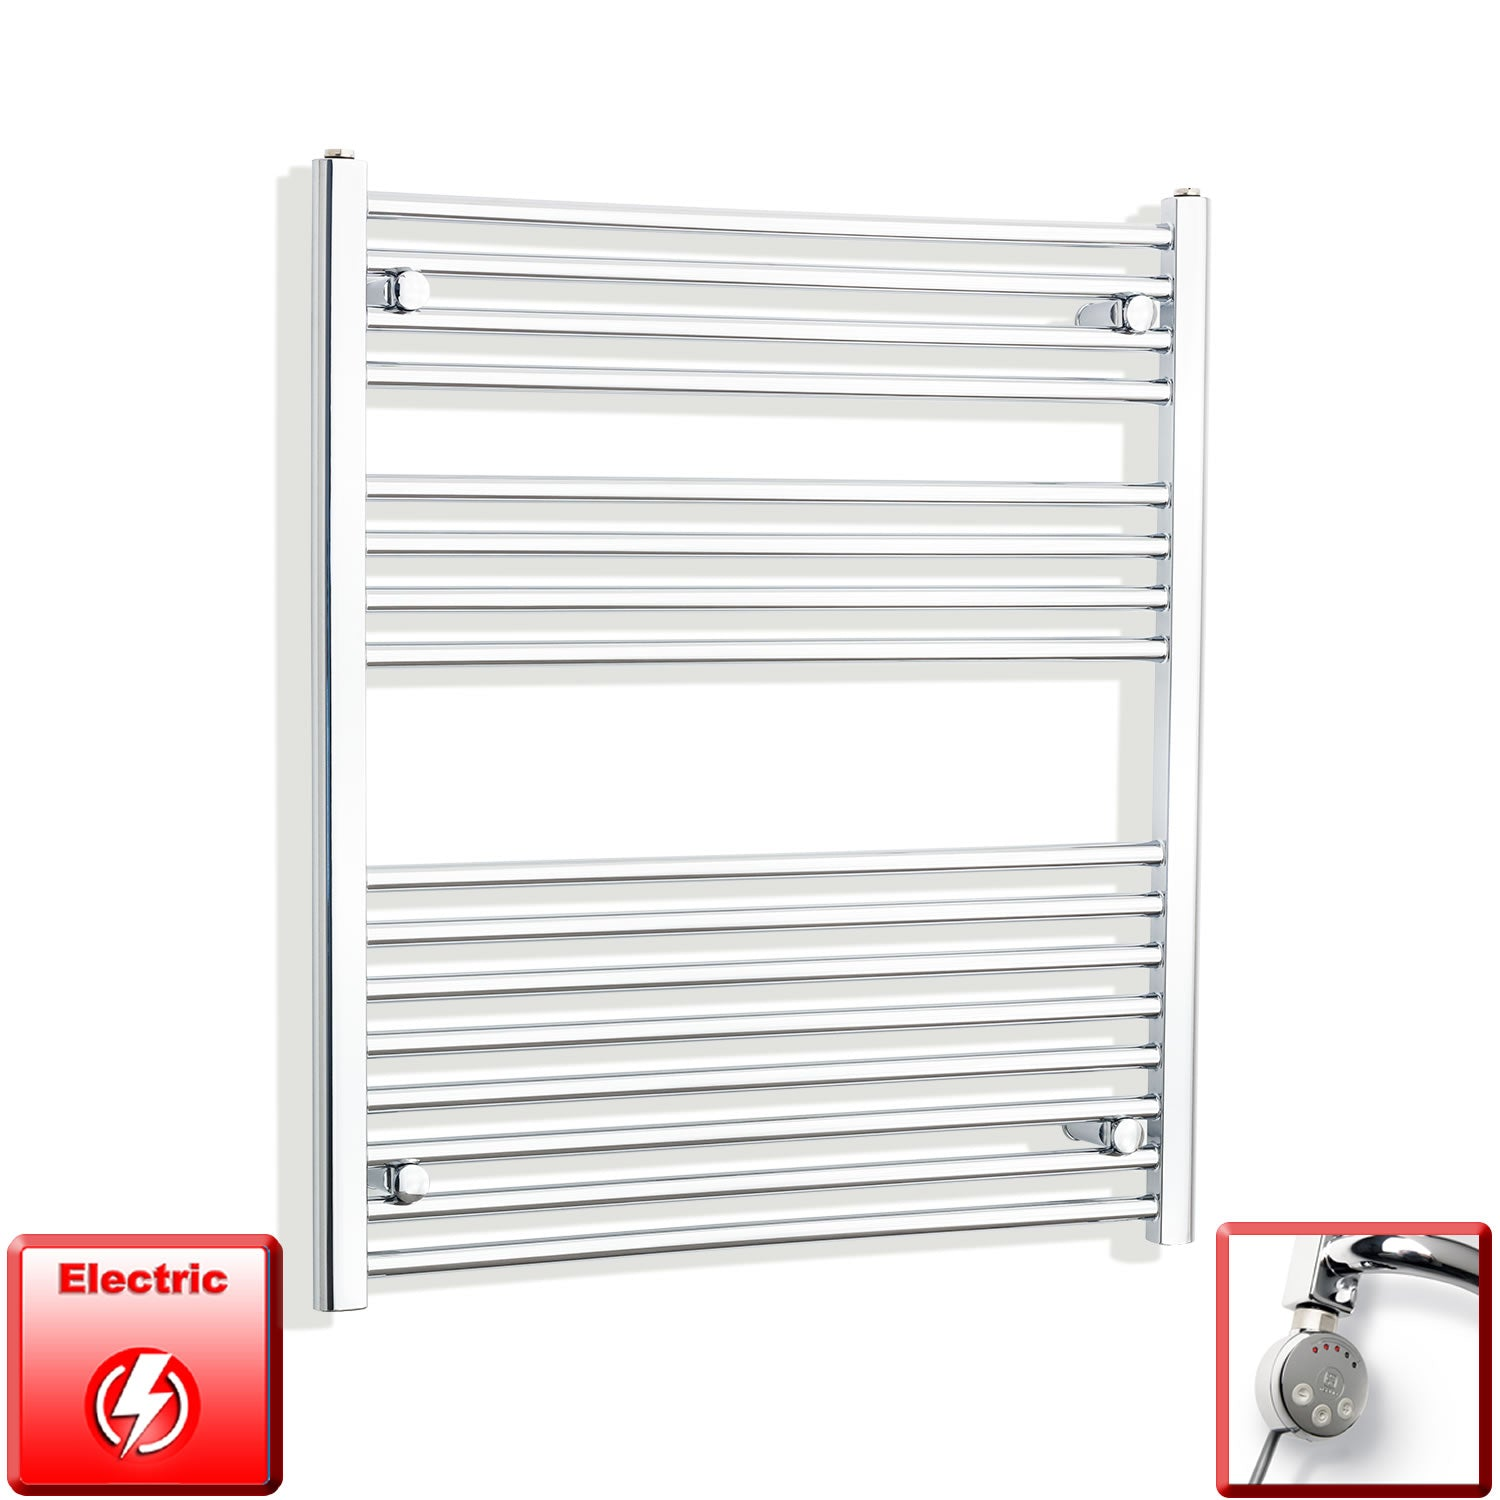 800mm Wide 900mm High Flat Chrome Pre-Filled Electric Heated Towel Rail Radiator HTR,MEG Thermostatic Element